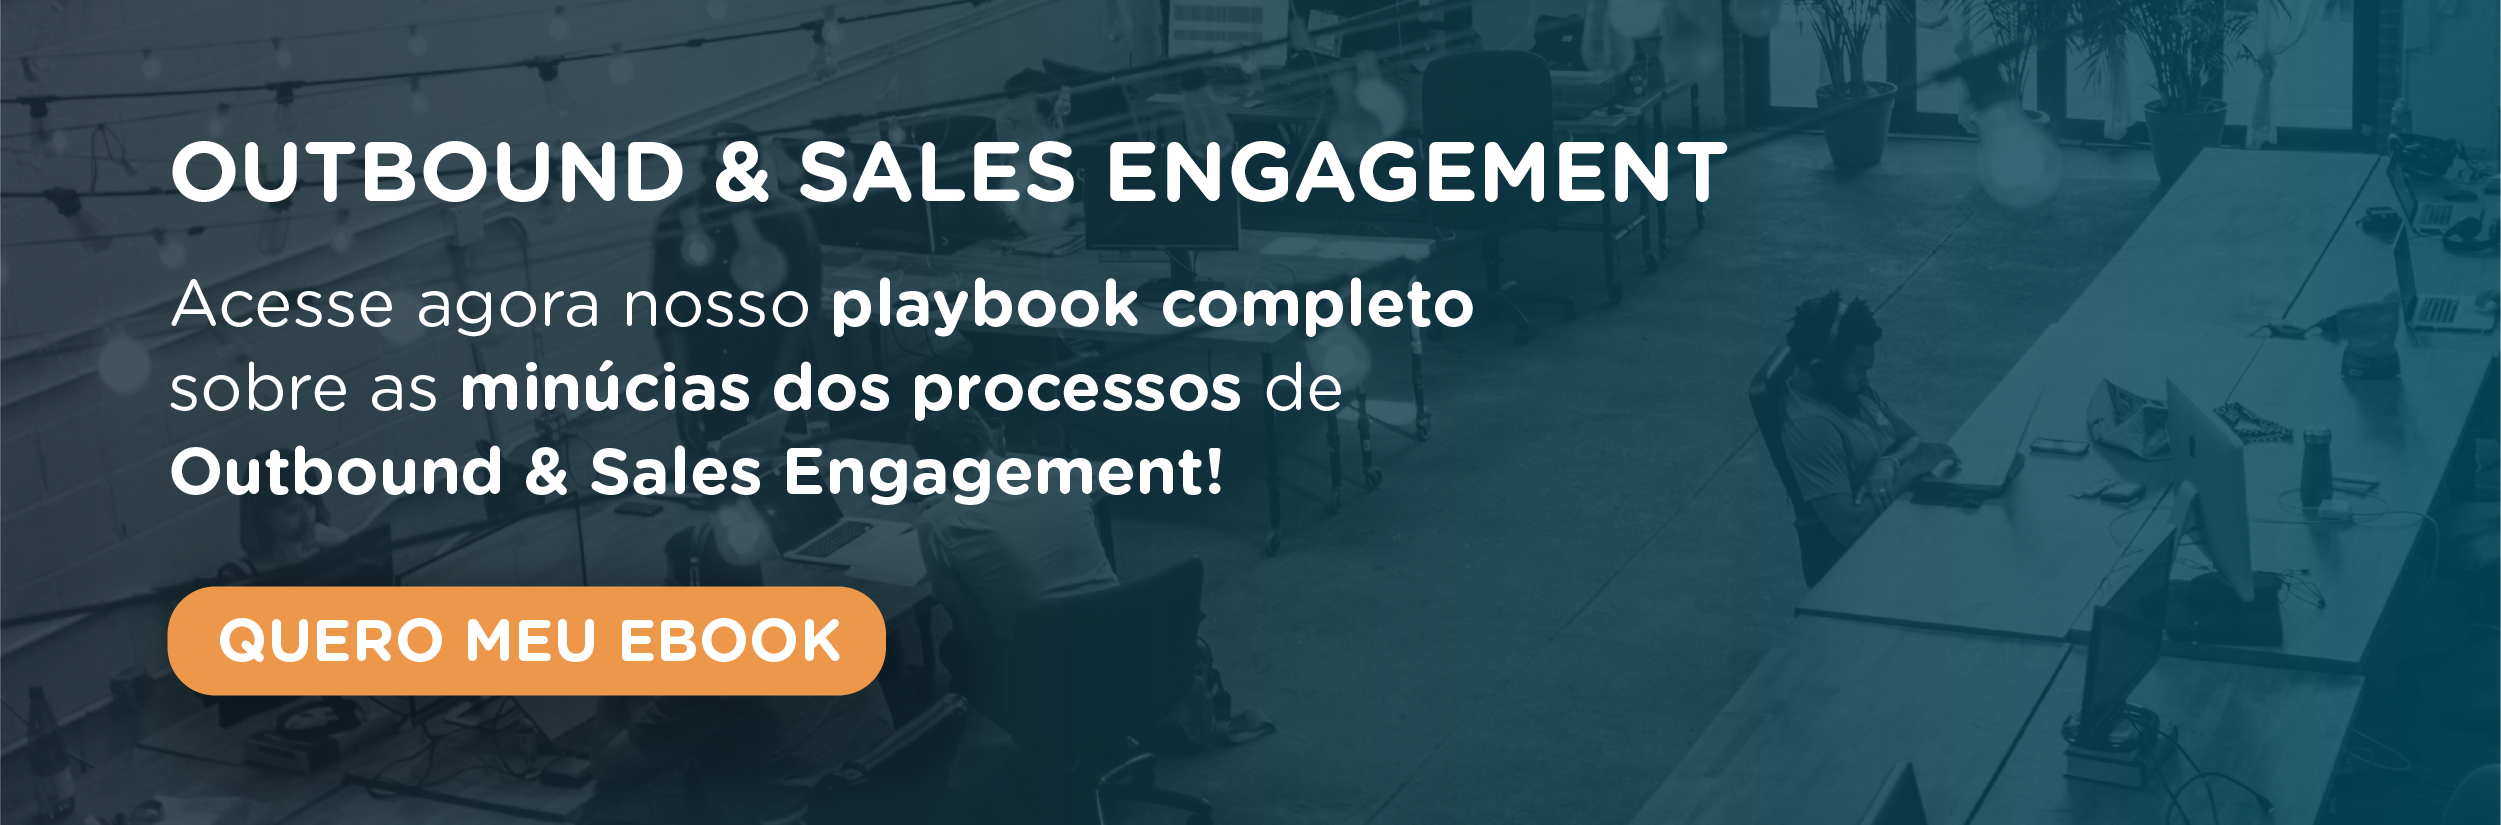 Playbook Completo: Outbound & Sales Engagement